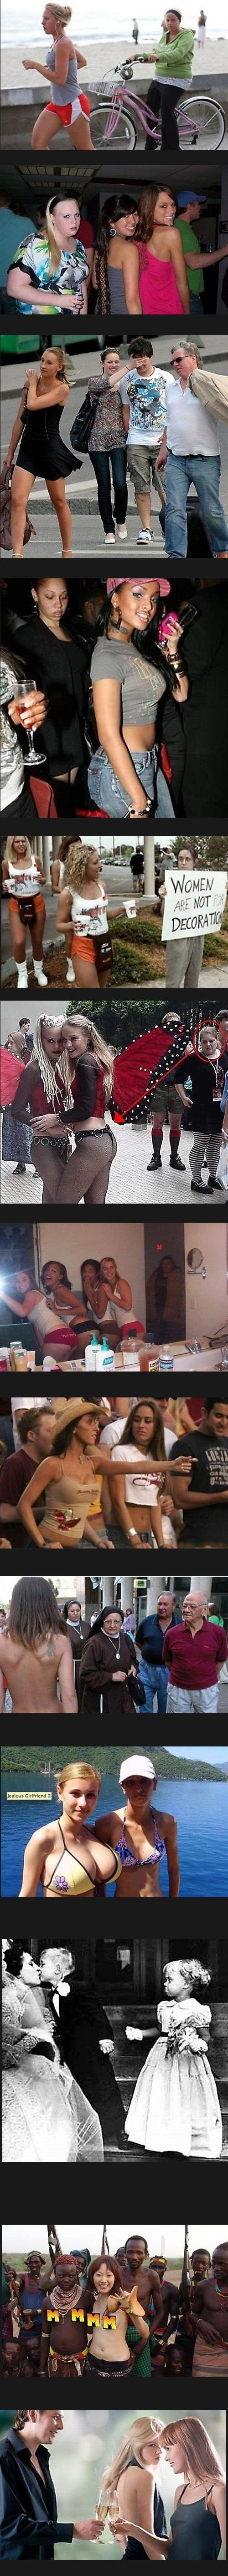 Jealous women. .. I guess the chick in the third pic covered the guys eyes for a good reason. Look at his crotch.